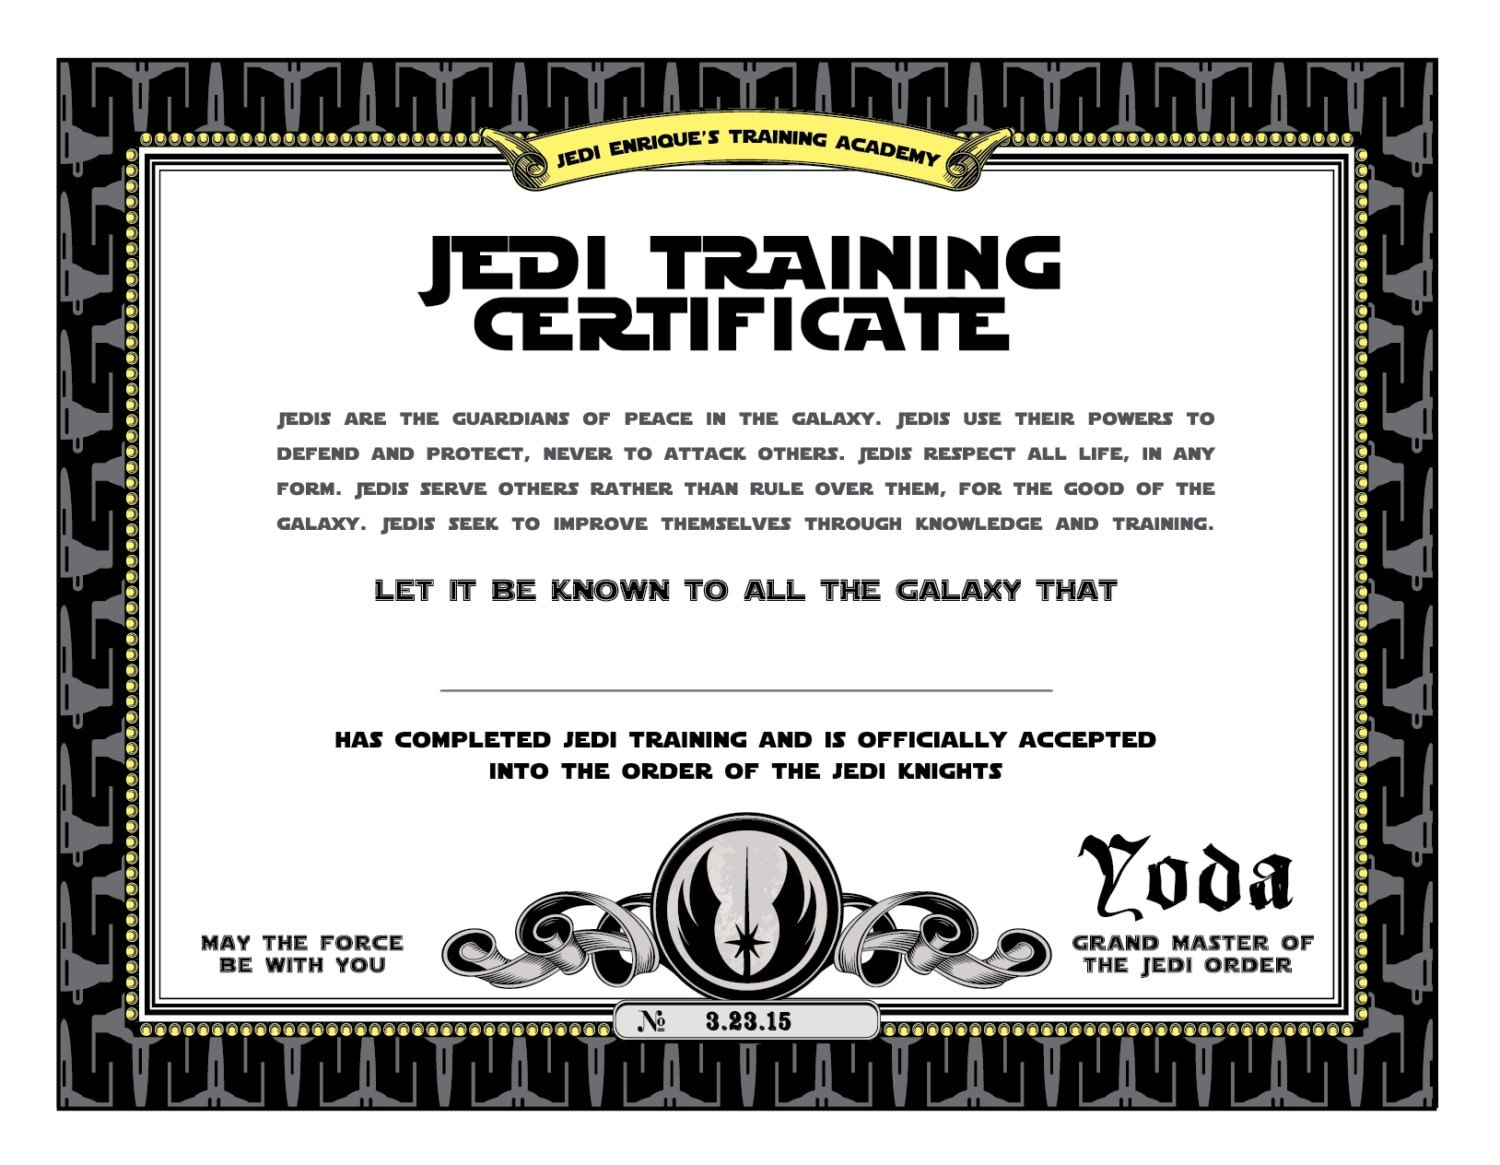 Star wars birthday jedi training certificate printable for Jedi knight certificate template